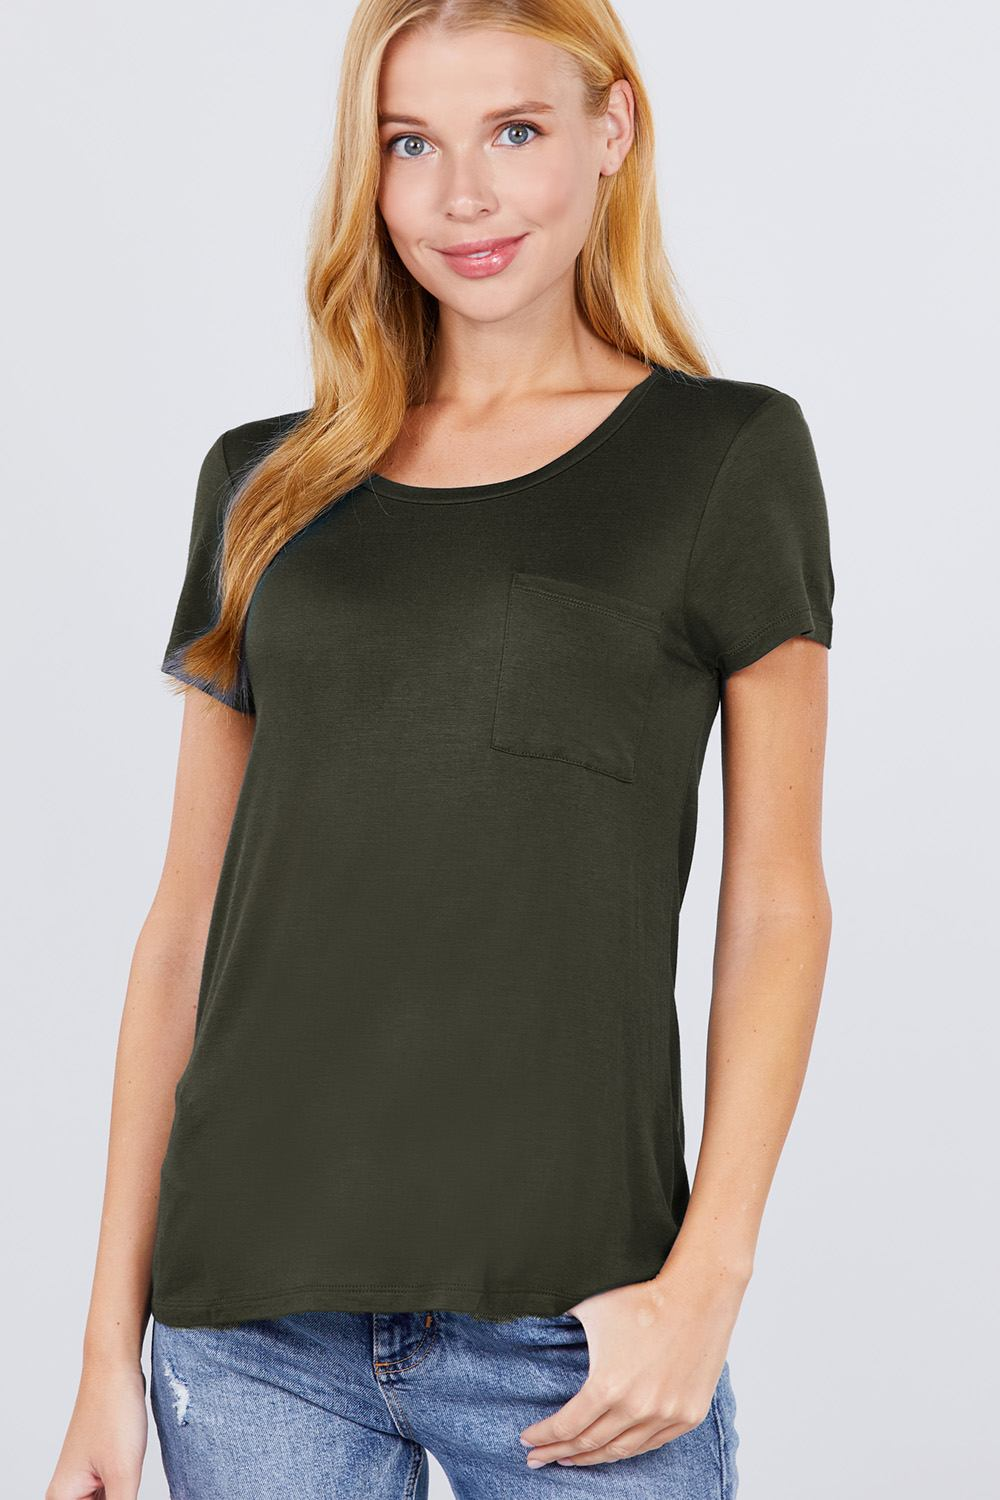 Active Boutique Dark Green Short Sleeve Scoop Neck Top With Pocket